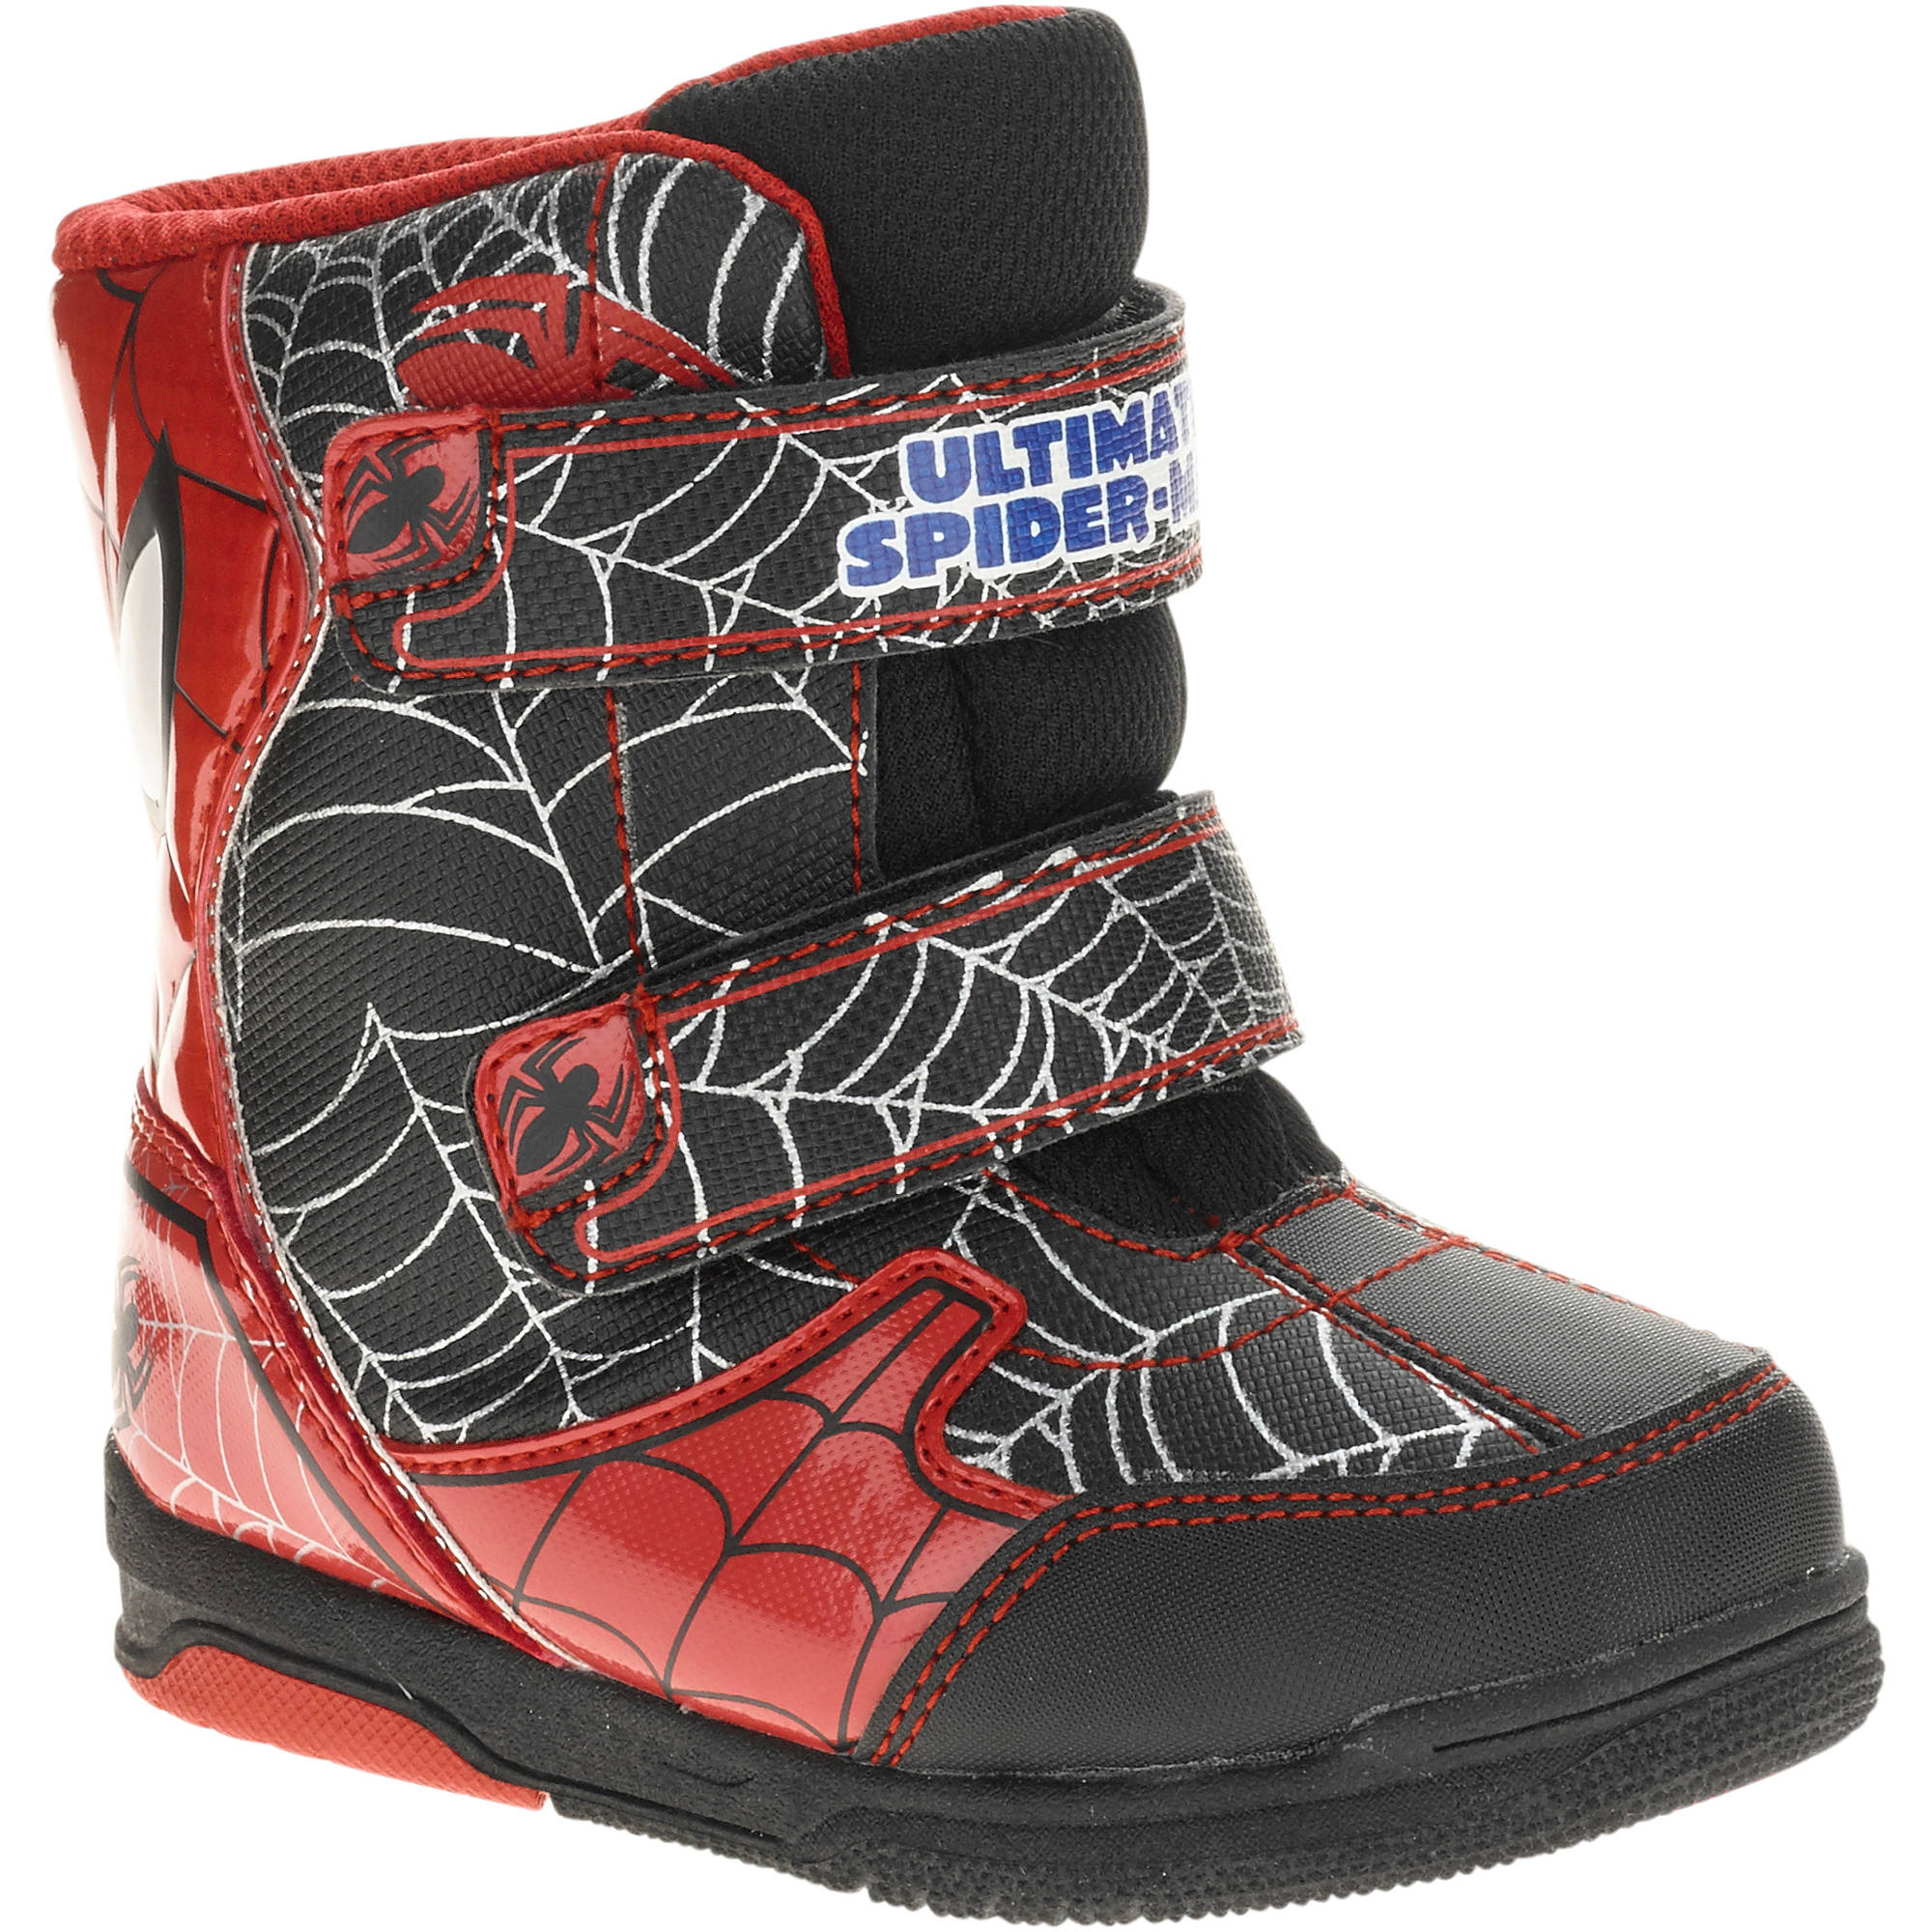 Spiderman Toddler Boy's Winter Boot